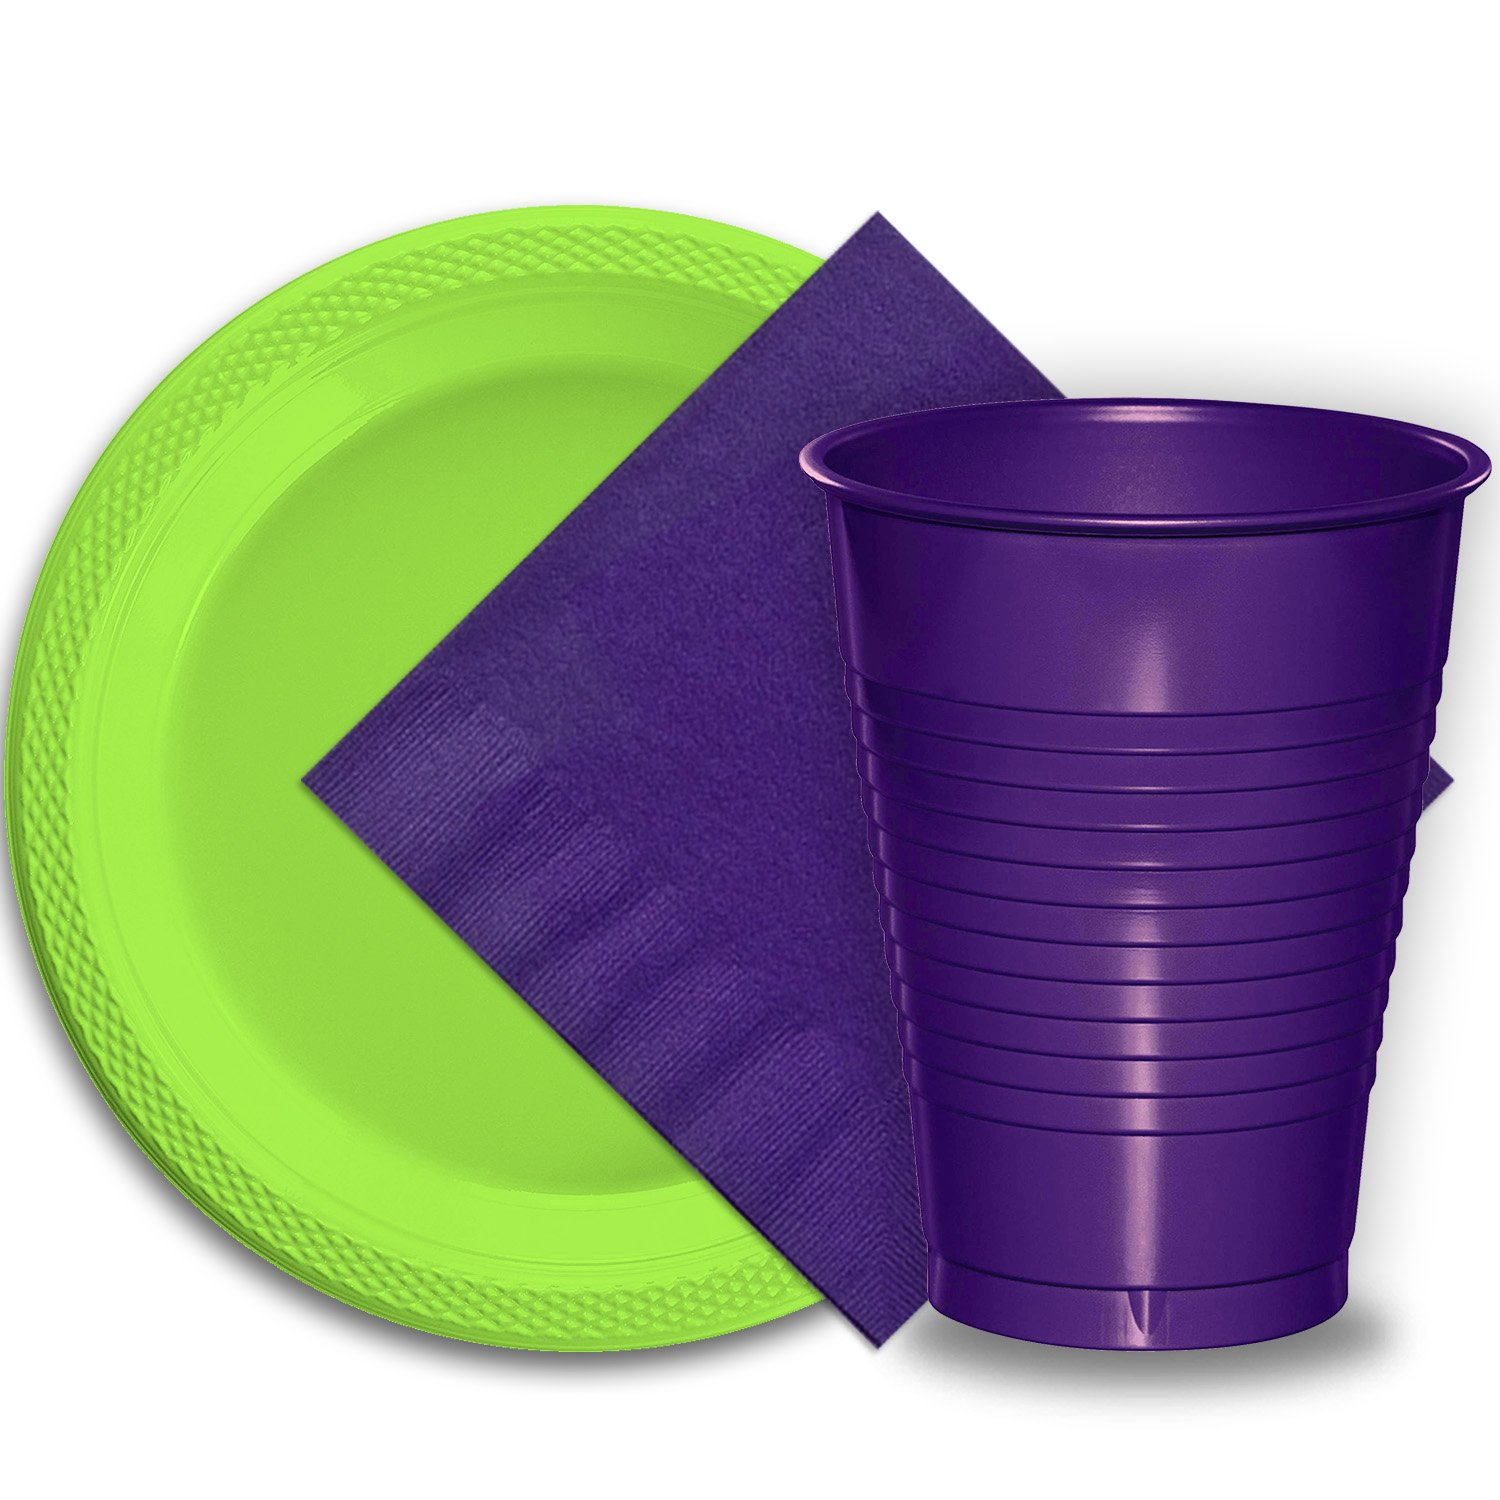 Purple and Lime Green Dinner Plates, Plastic Party Supplies for 50 Guests